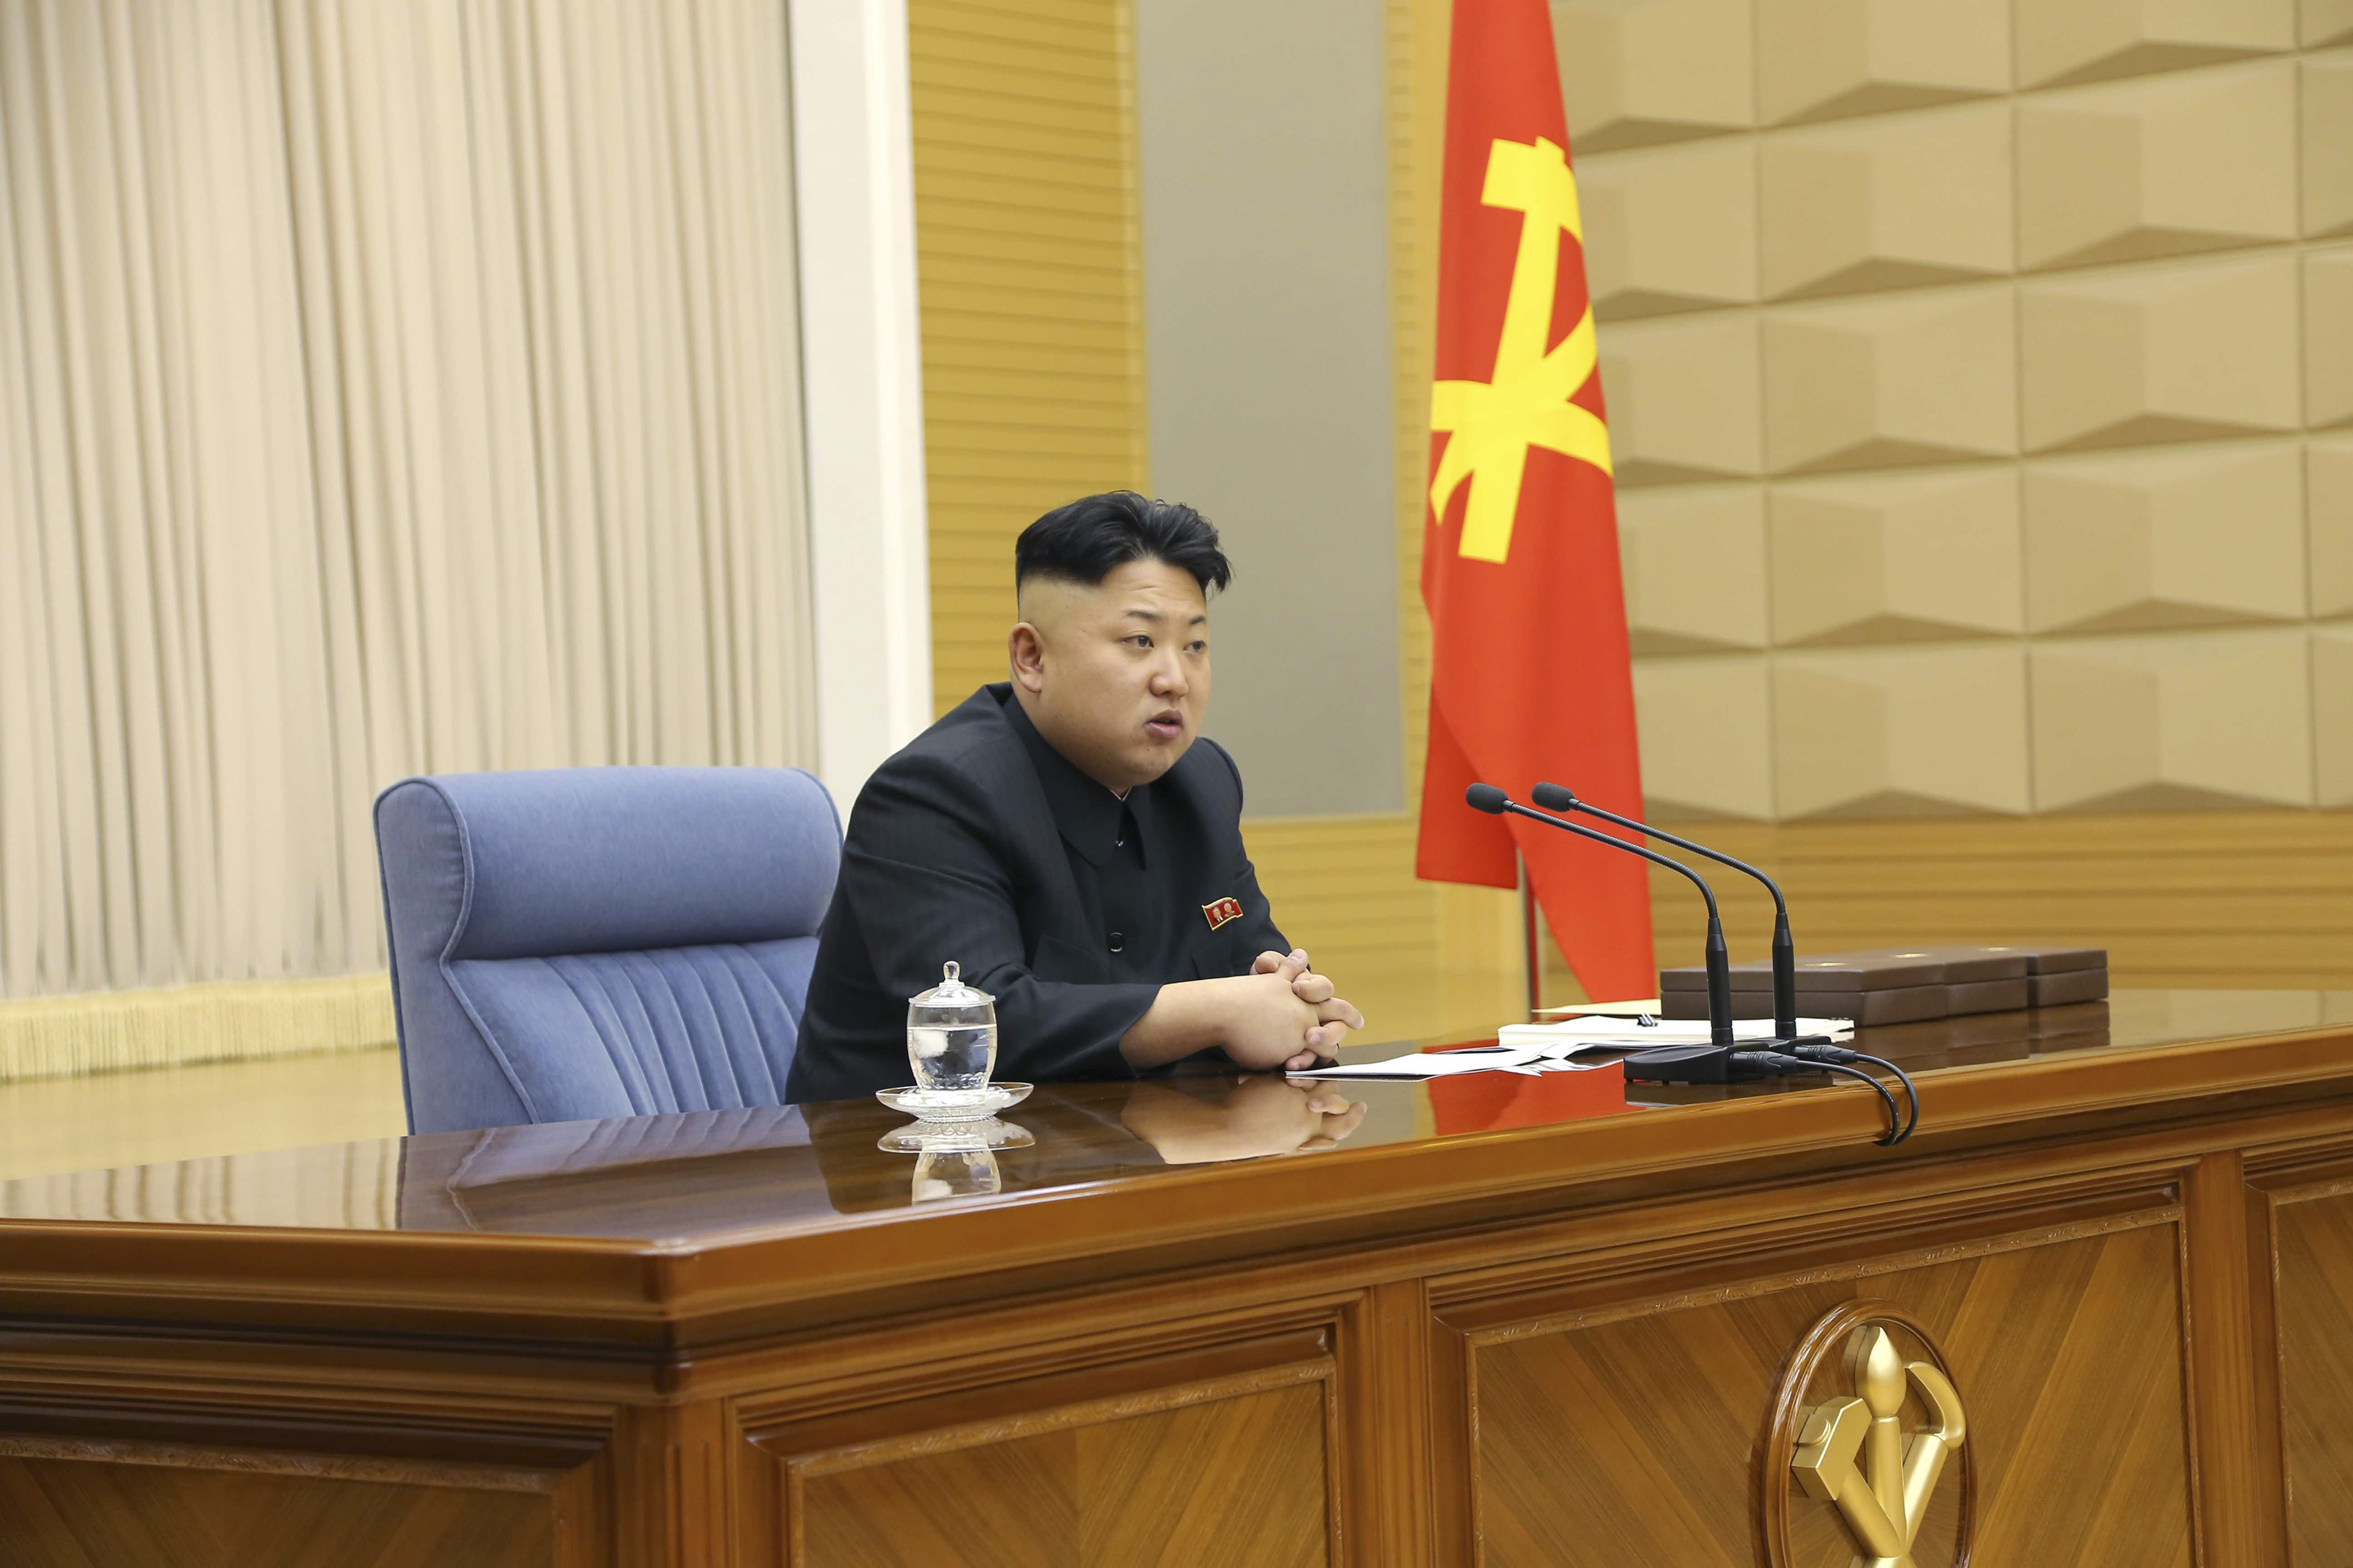 Nice haircut, Mr Dictator. North Korea leader Kim Jong Un presides over a meeting of the Central Military Commission of the Workers' Party of Korea.